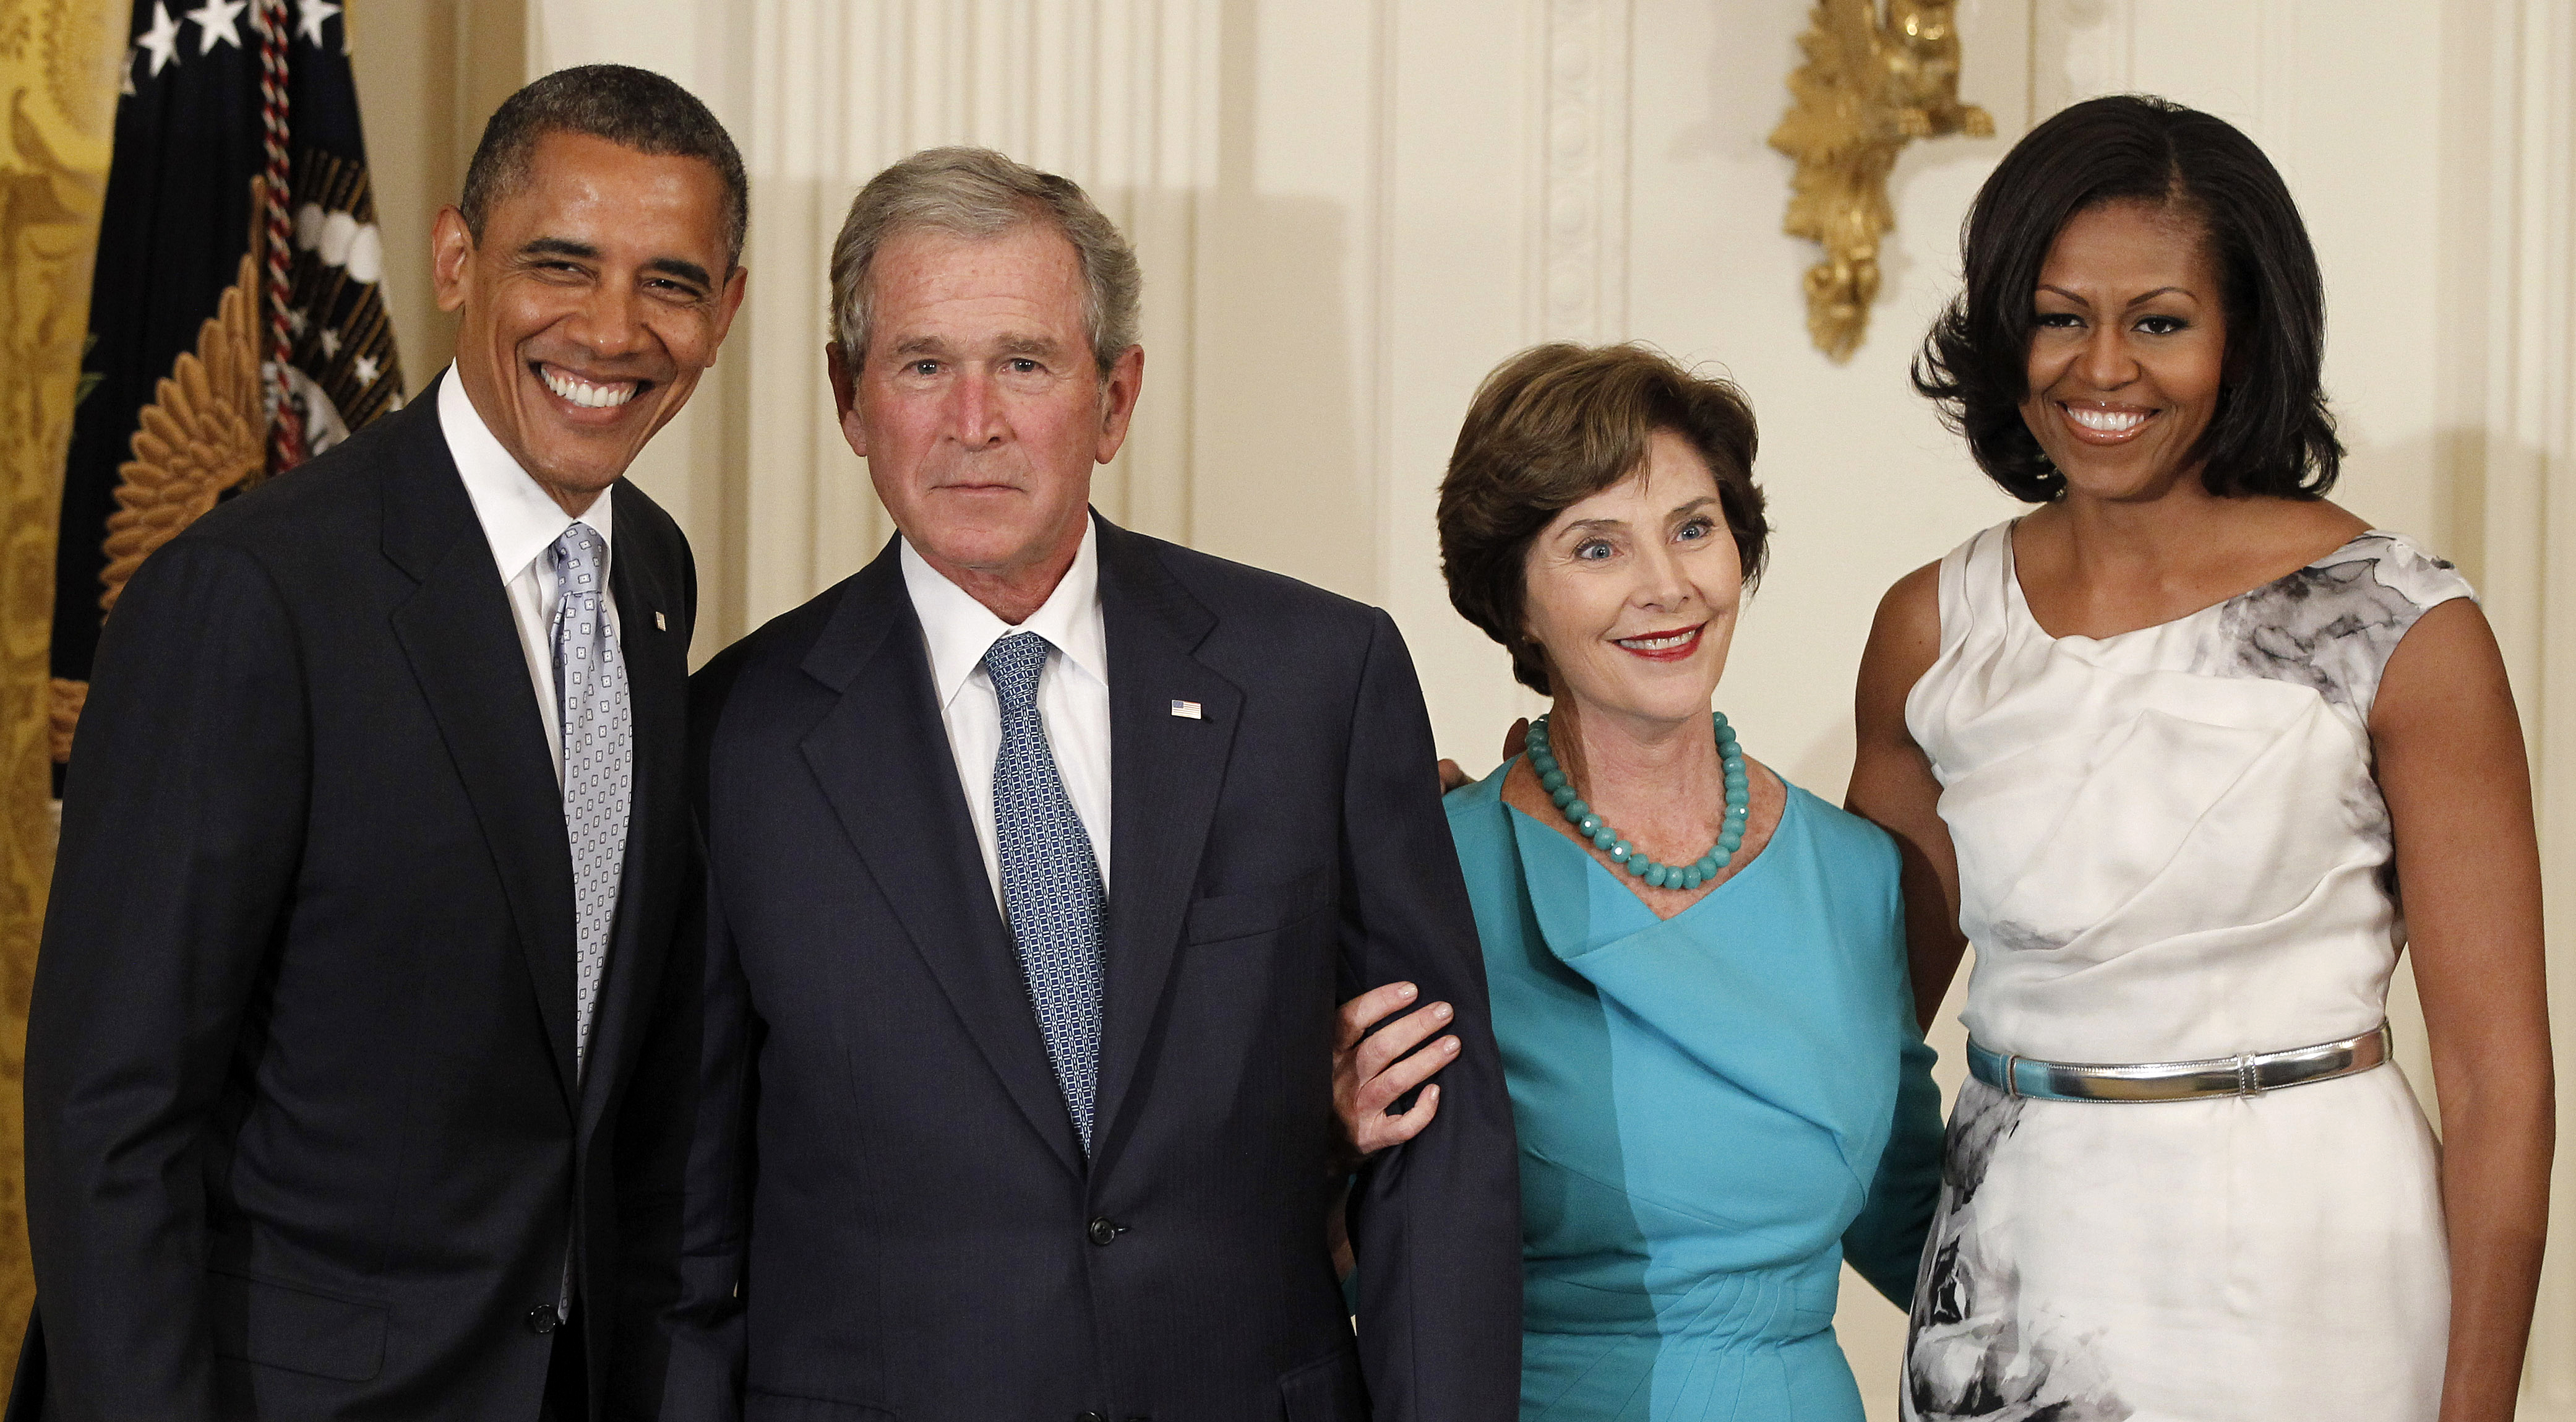 <div class='meta'><div class='origin-logo' data-origin='none'></div><span class='caption-text' data-credit='AP Photo/Pablo Martinez Monsivais'>From left, President Barack Obama, former President George W. Bush,Laura Bush and Michelle Obama, pose in the East Room of the White House in Washington, Thursday, May 31, 2012</span></div>